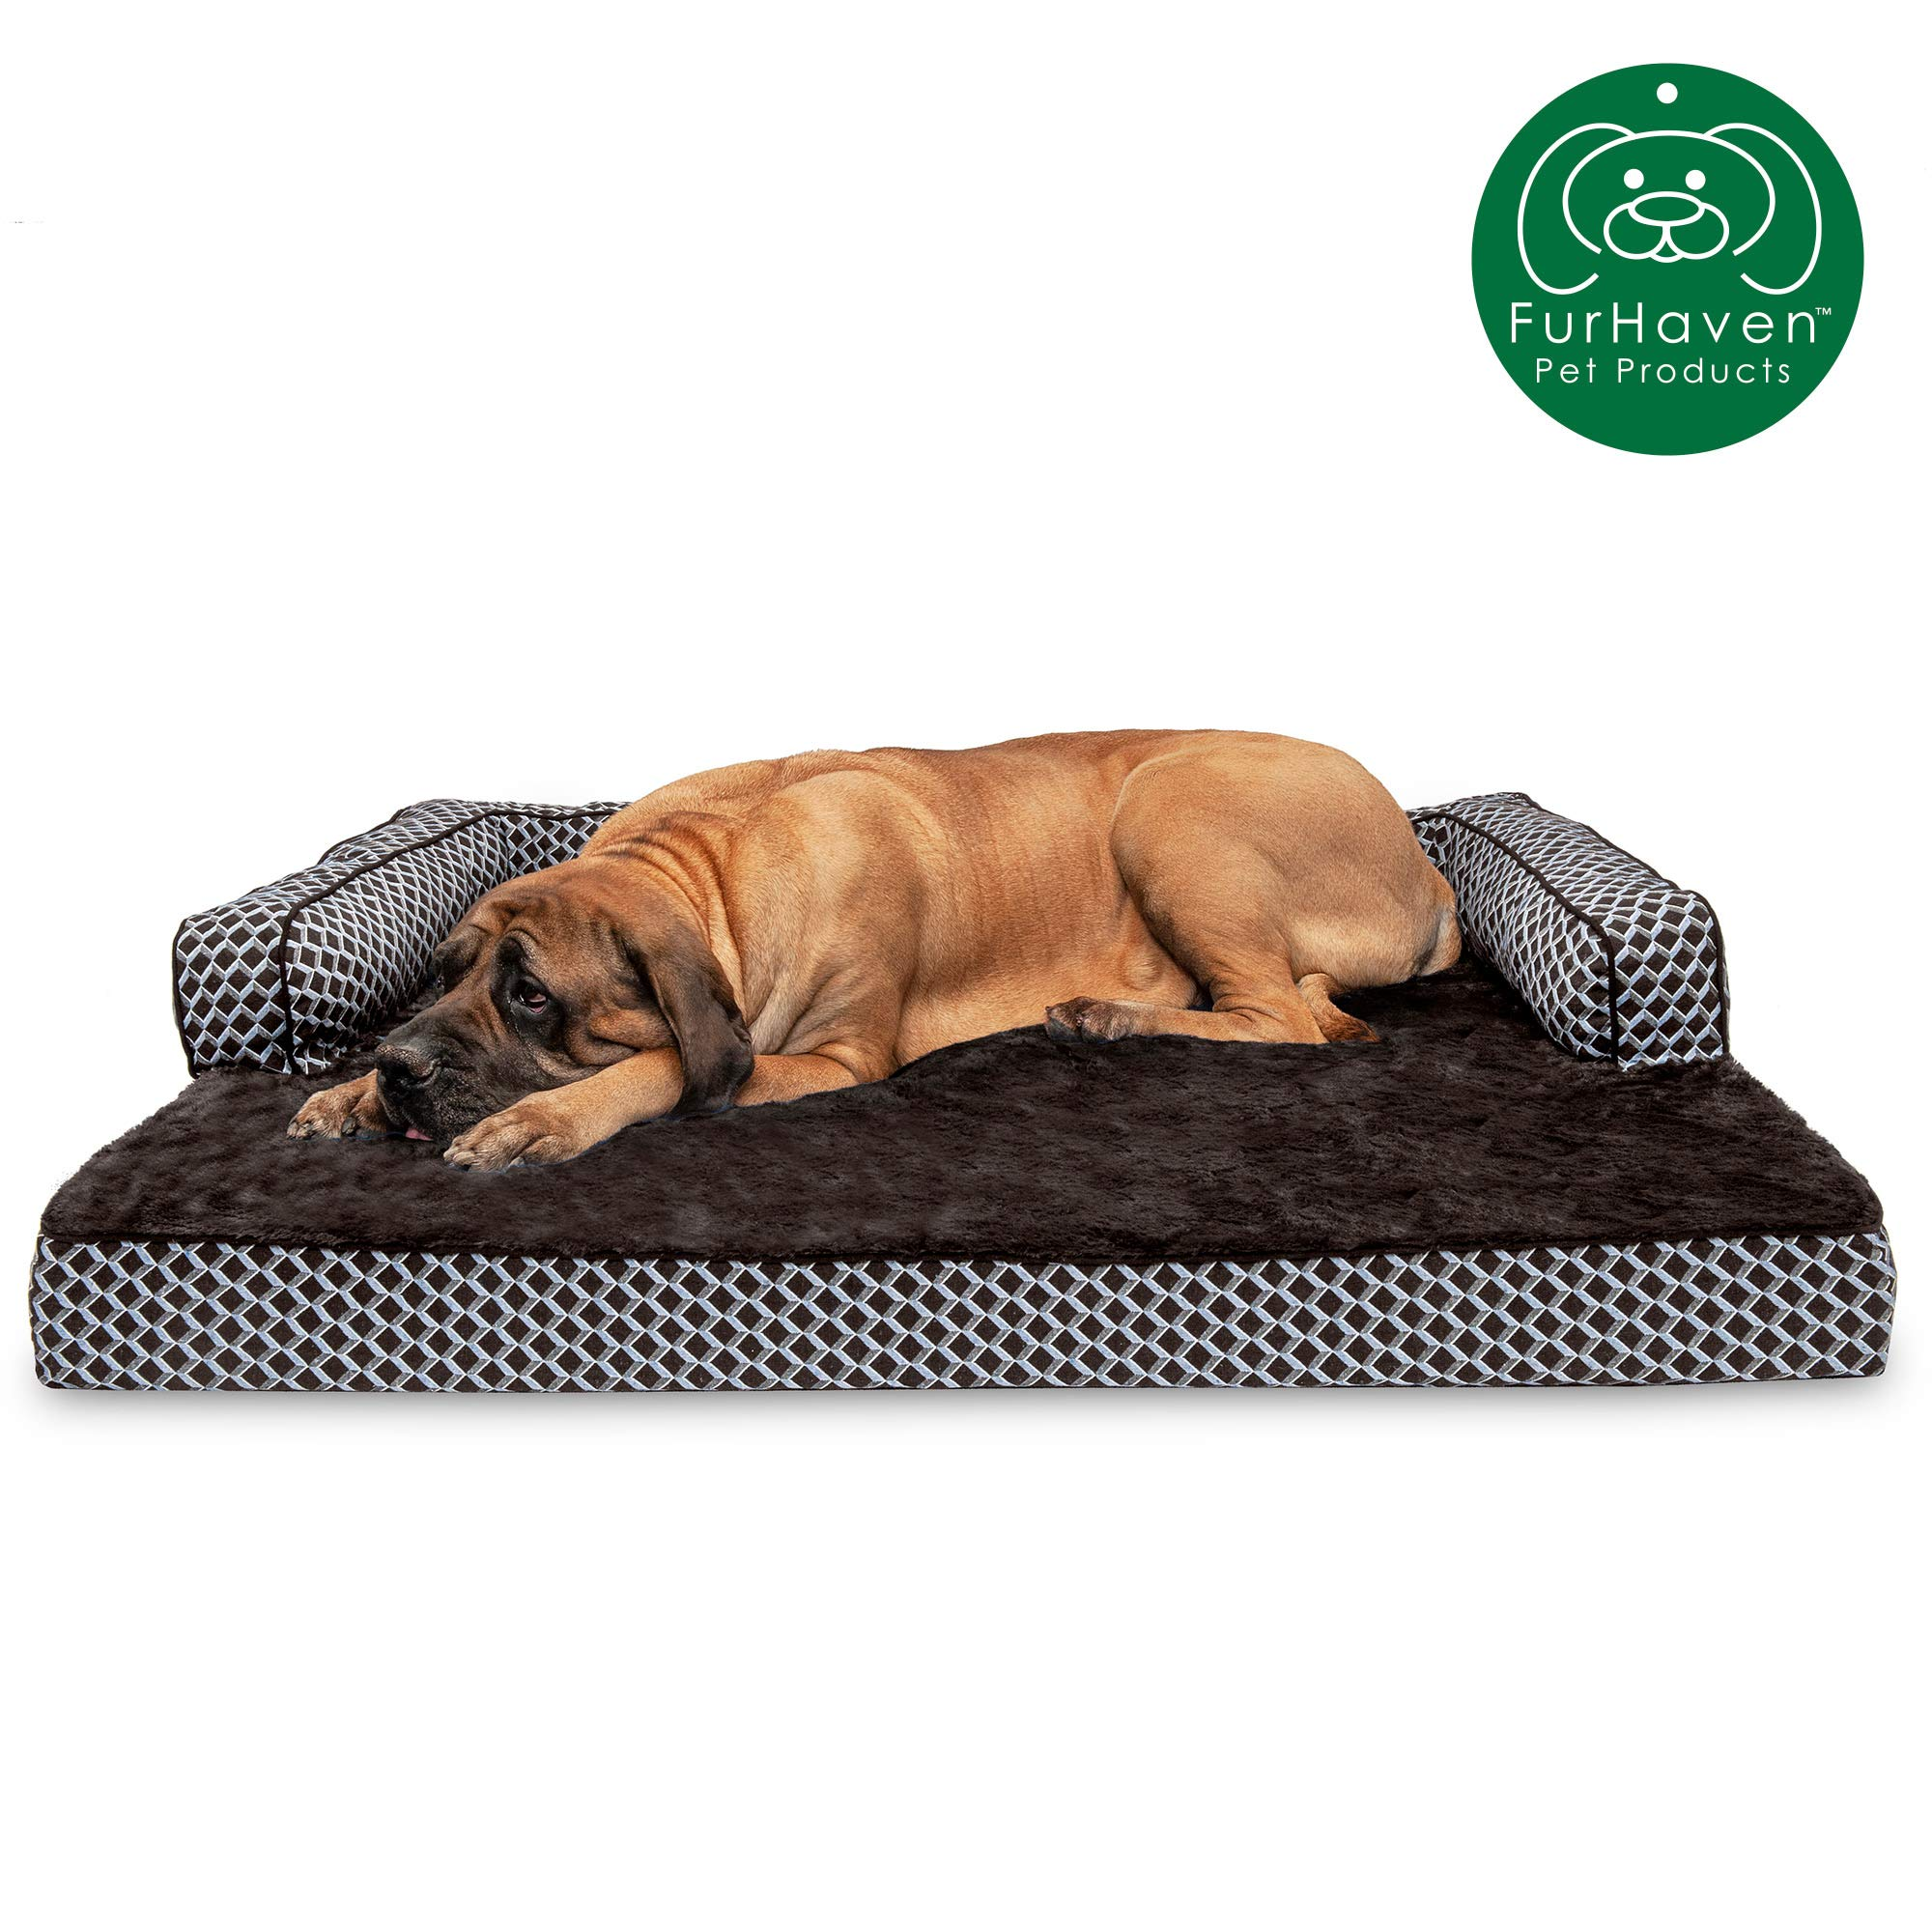 Furhaven Pet Dog Bed | Orthopedic Plush Faux Fur & Décor Comfy Couch Traditional Sofa-Style Living Room Couch Pet Bed w/Removable Cover for Dogs & Cats, Diamond Brown, Jumbo Plus by Furhaven